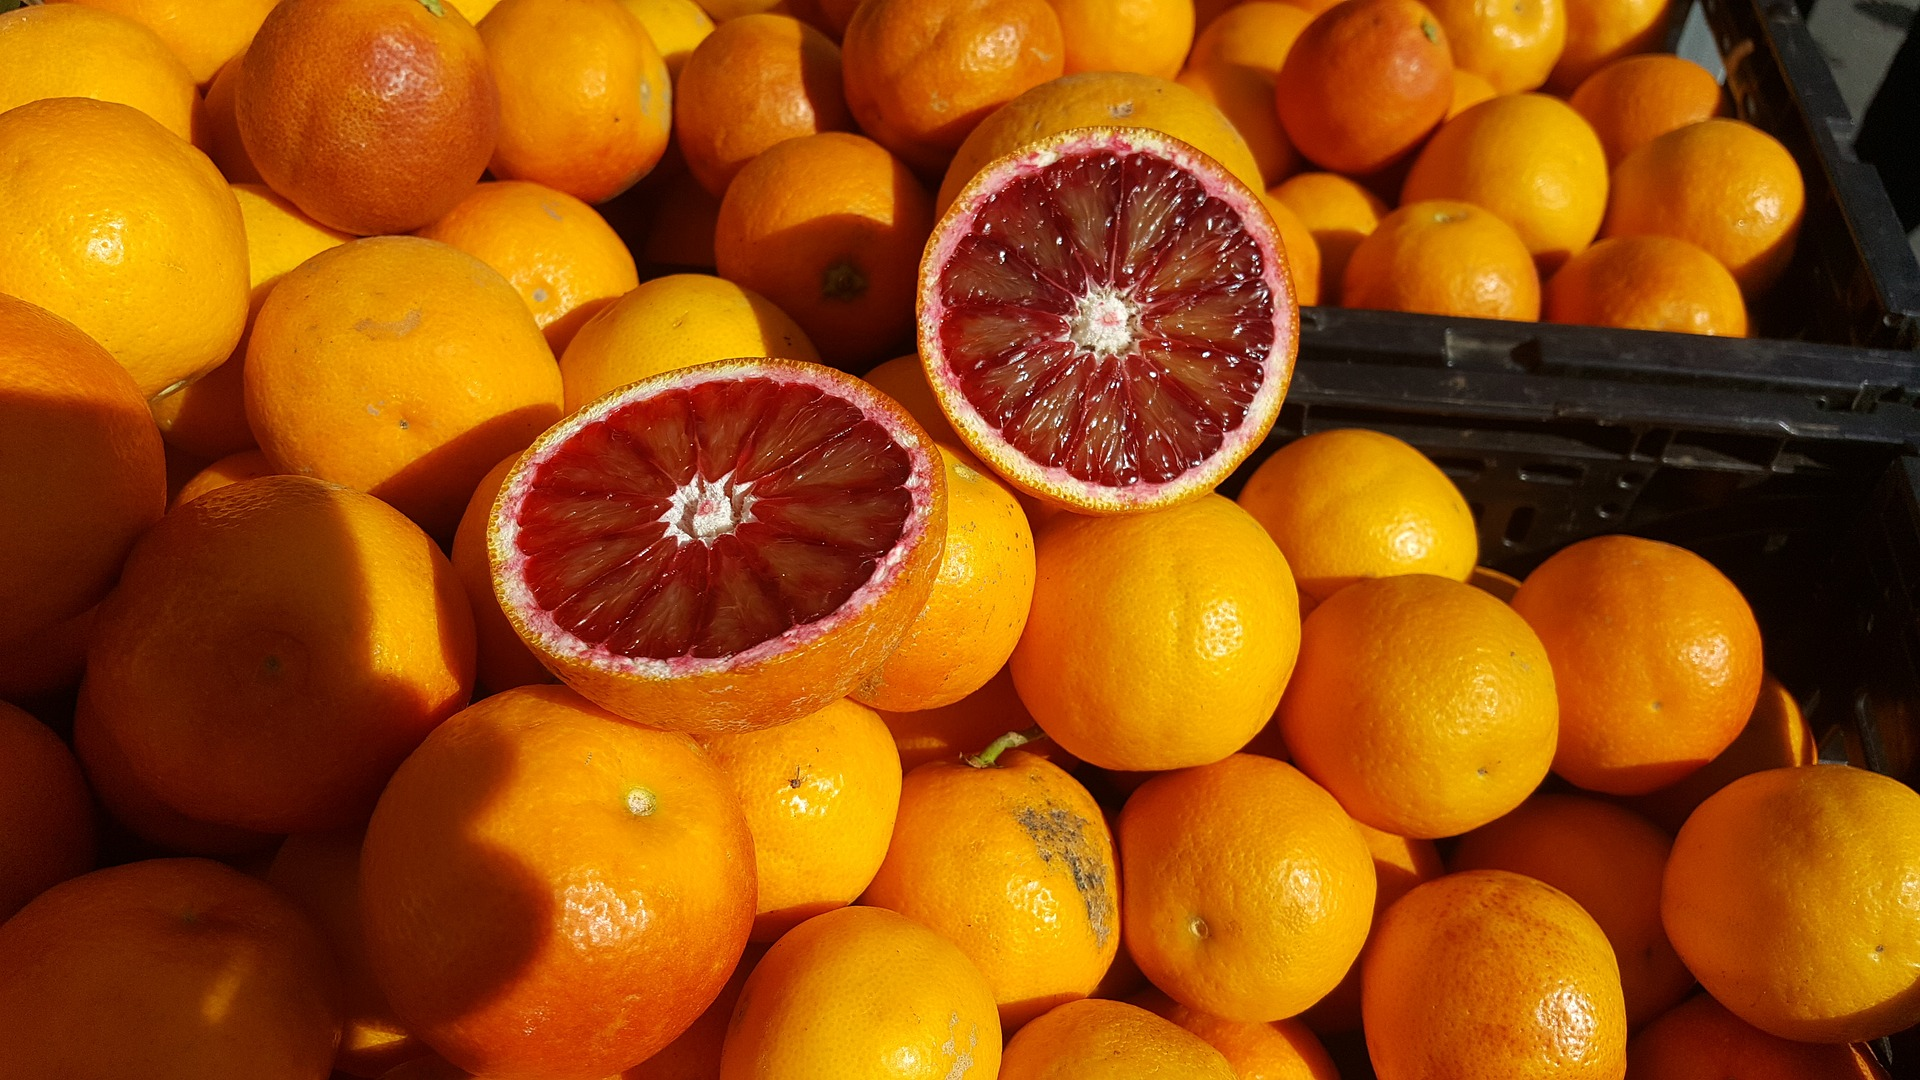 blood-orange-2051613_1920.jpg